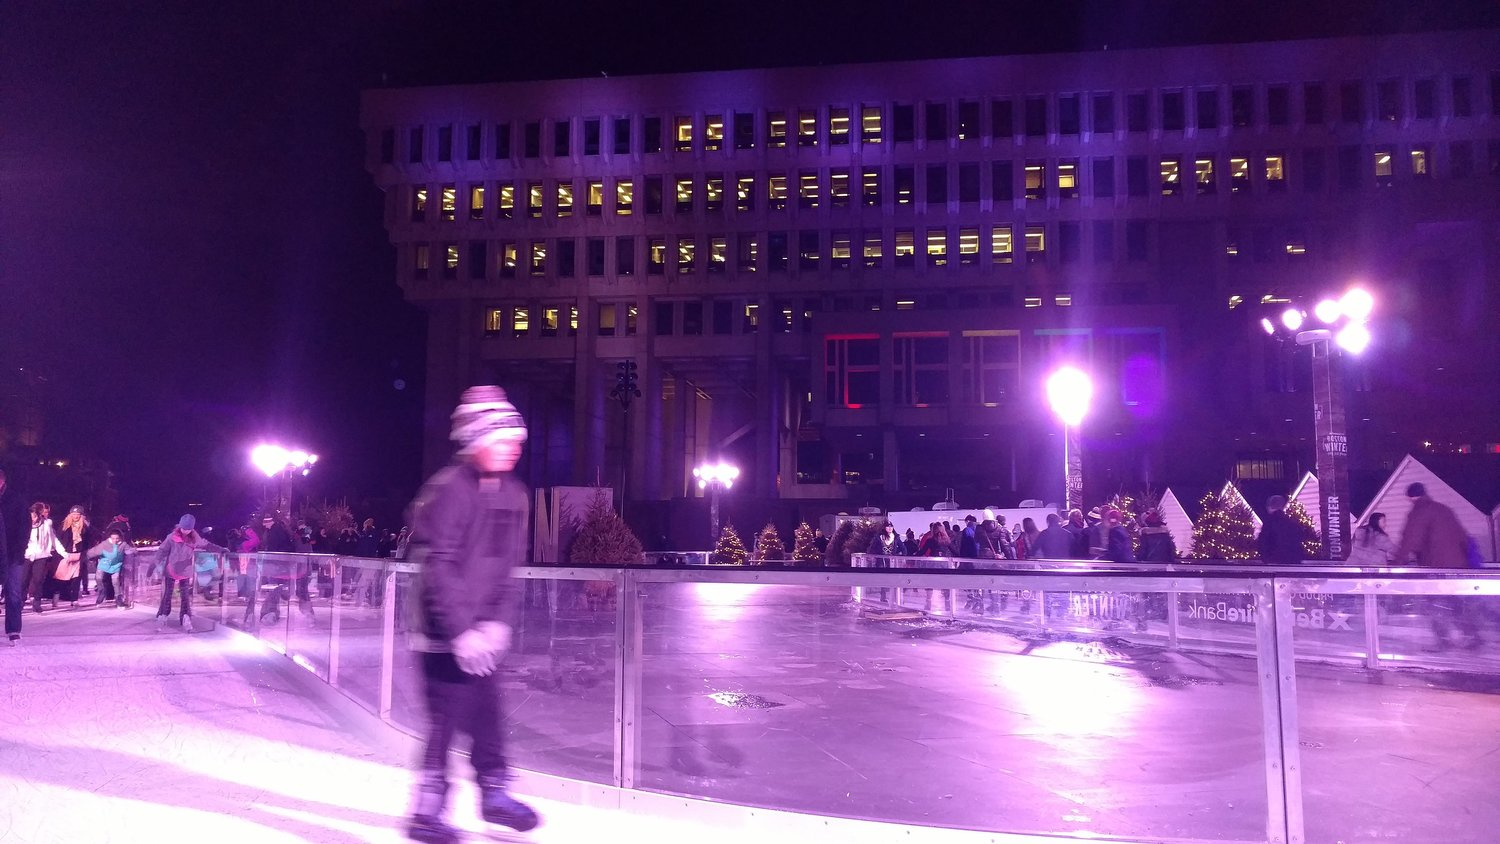 Skating rink at Boston's City Hall Plaza Winter Market in 2016